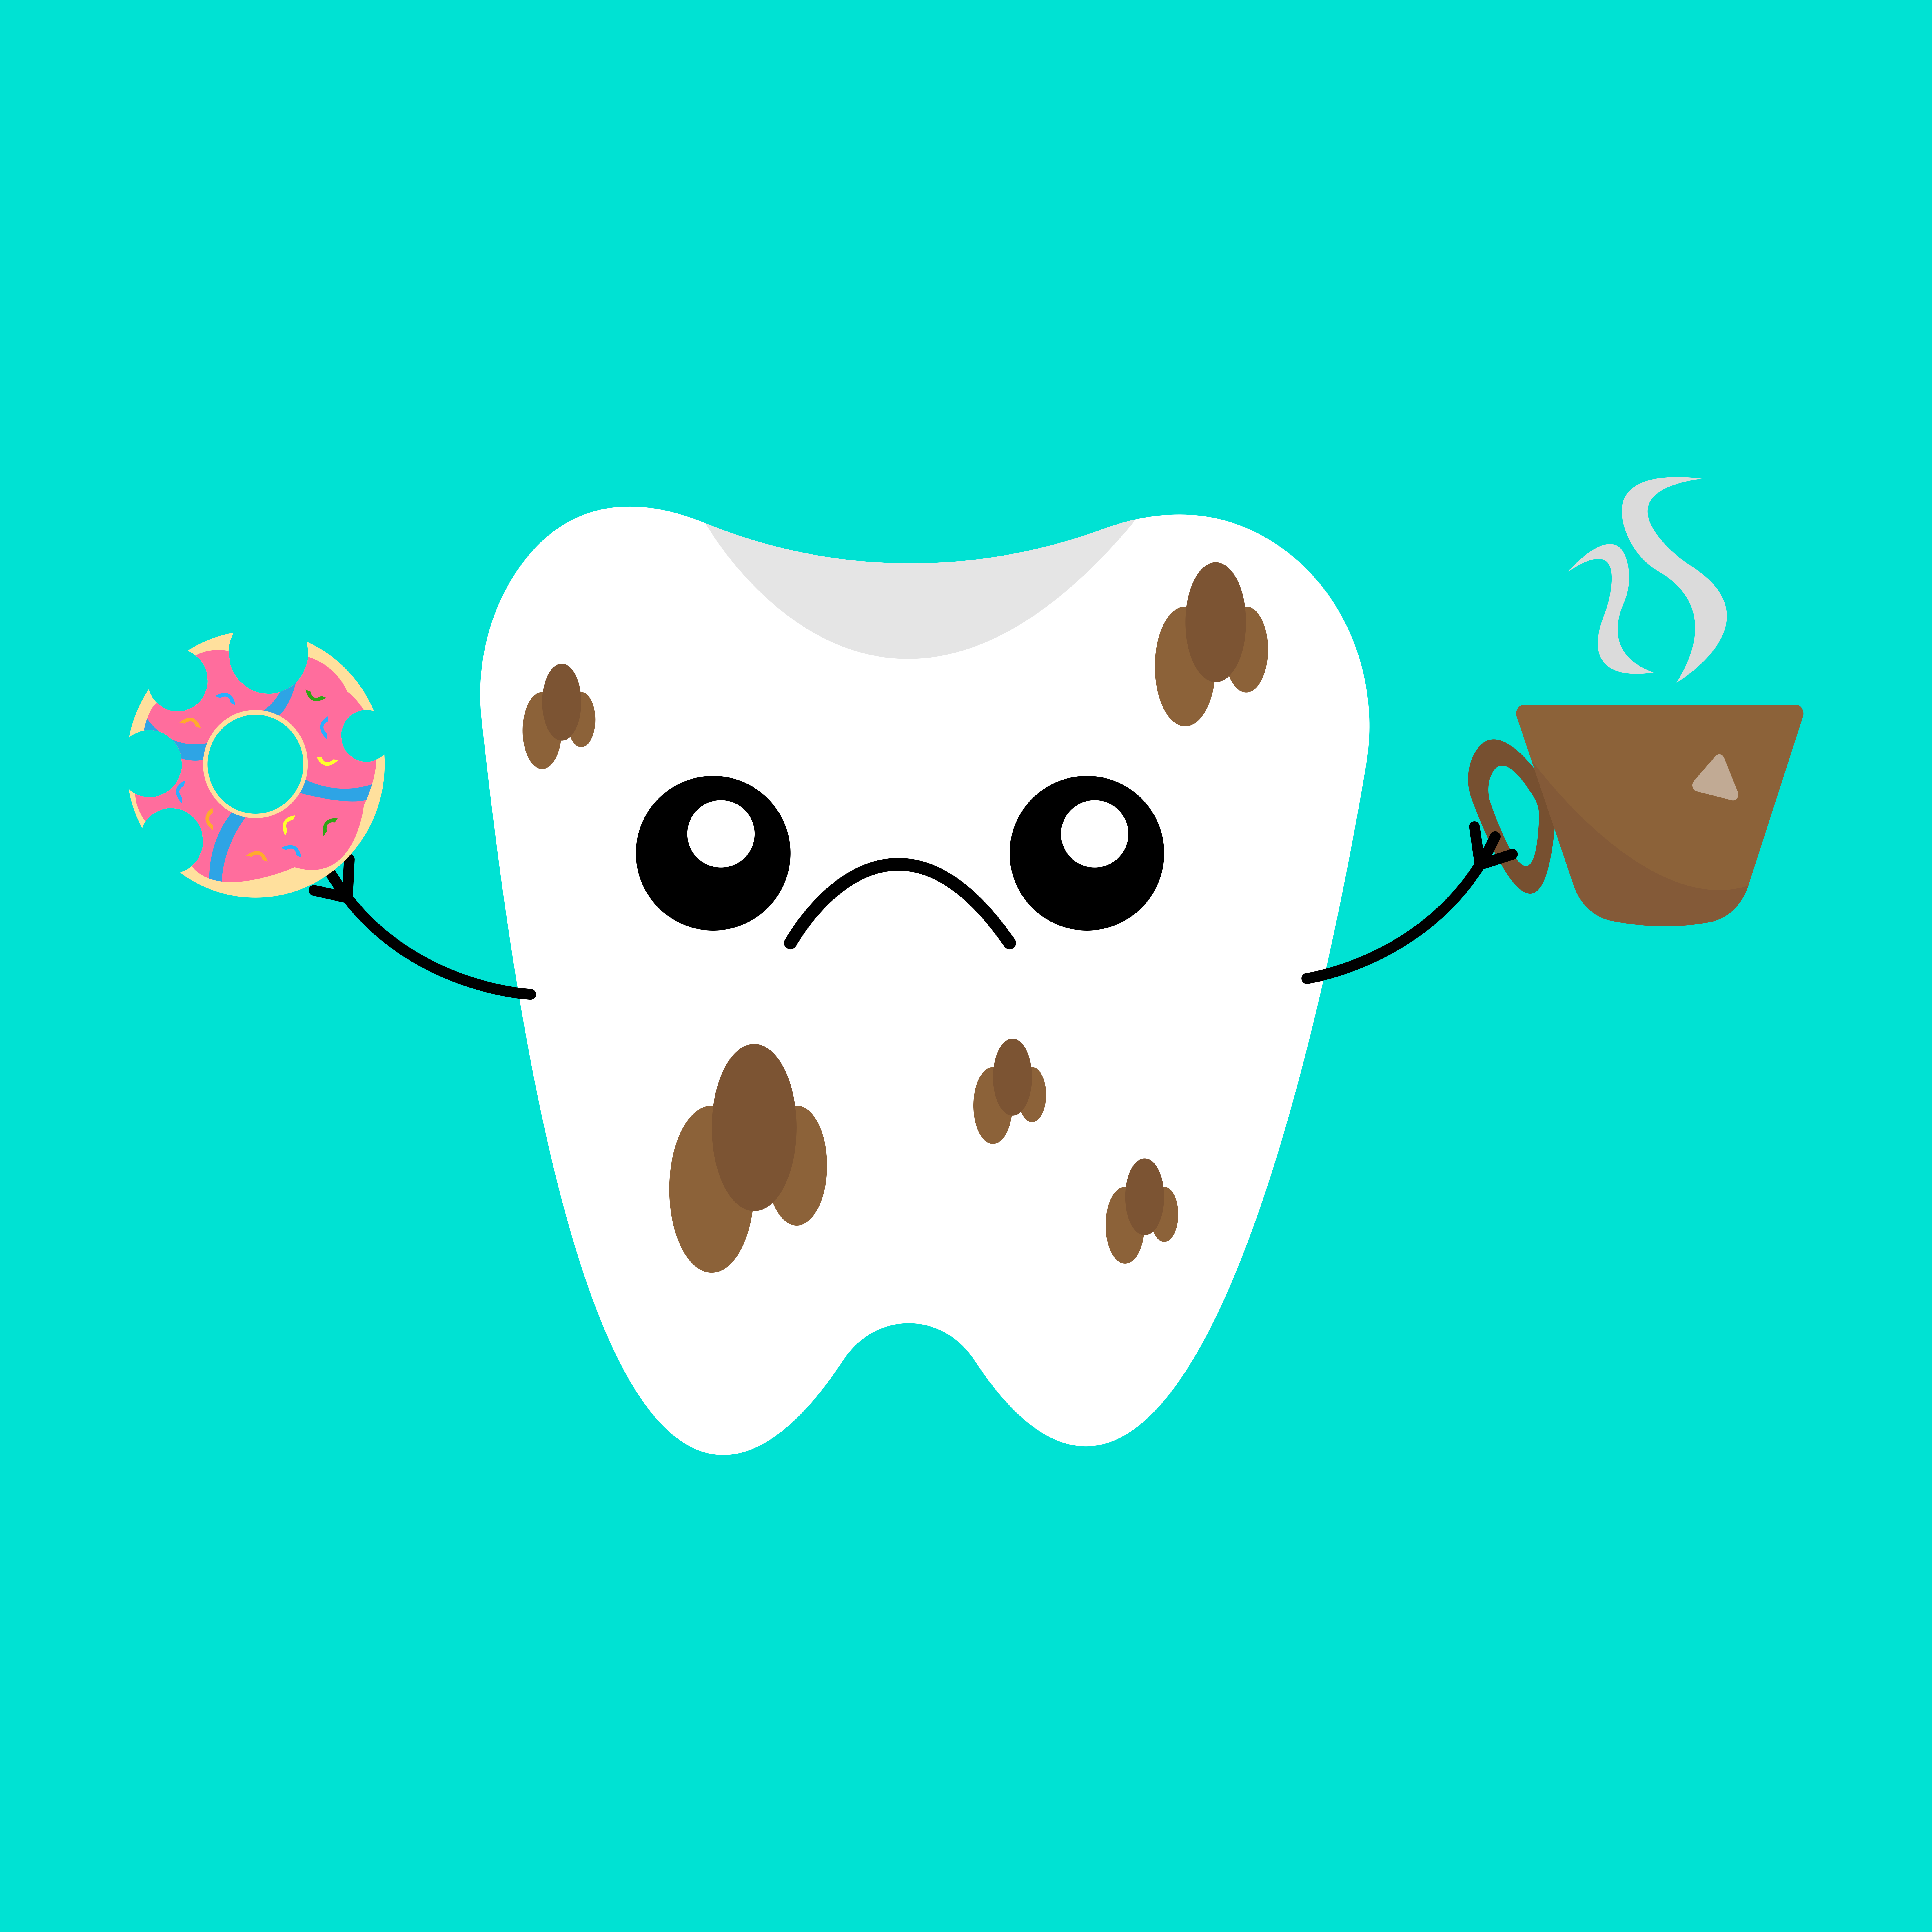 graphic illustration of frowning tooth with brown spots holding cup of coffee and donut